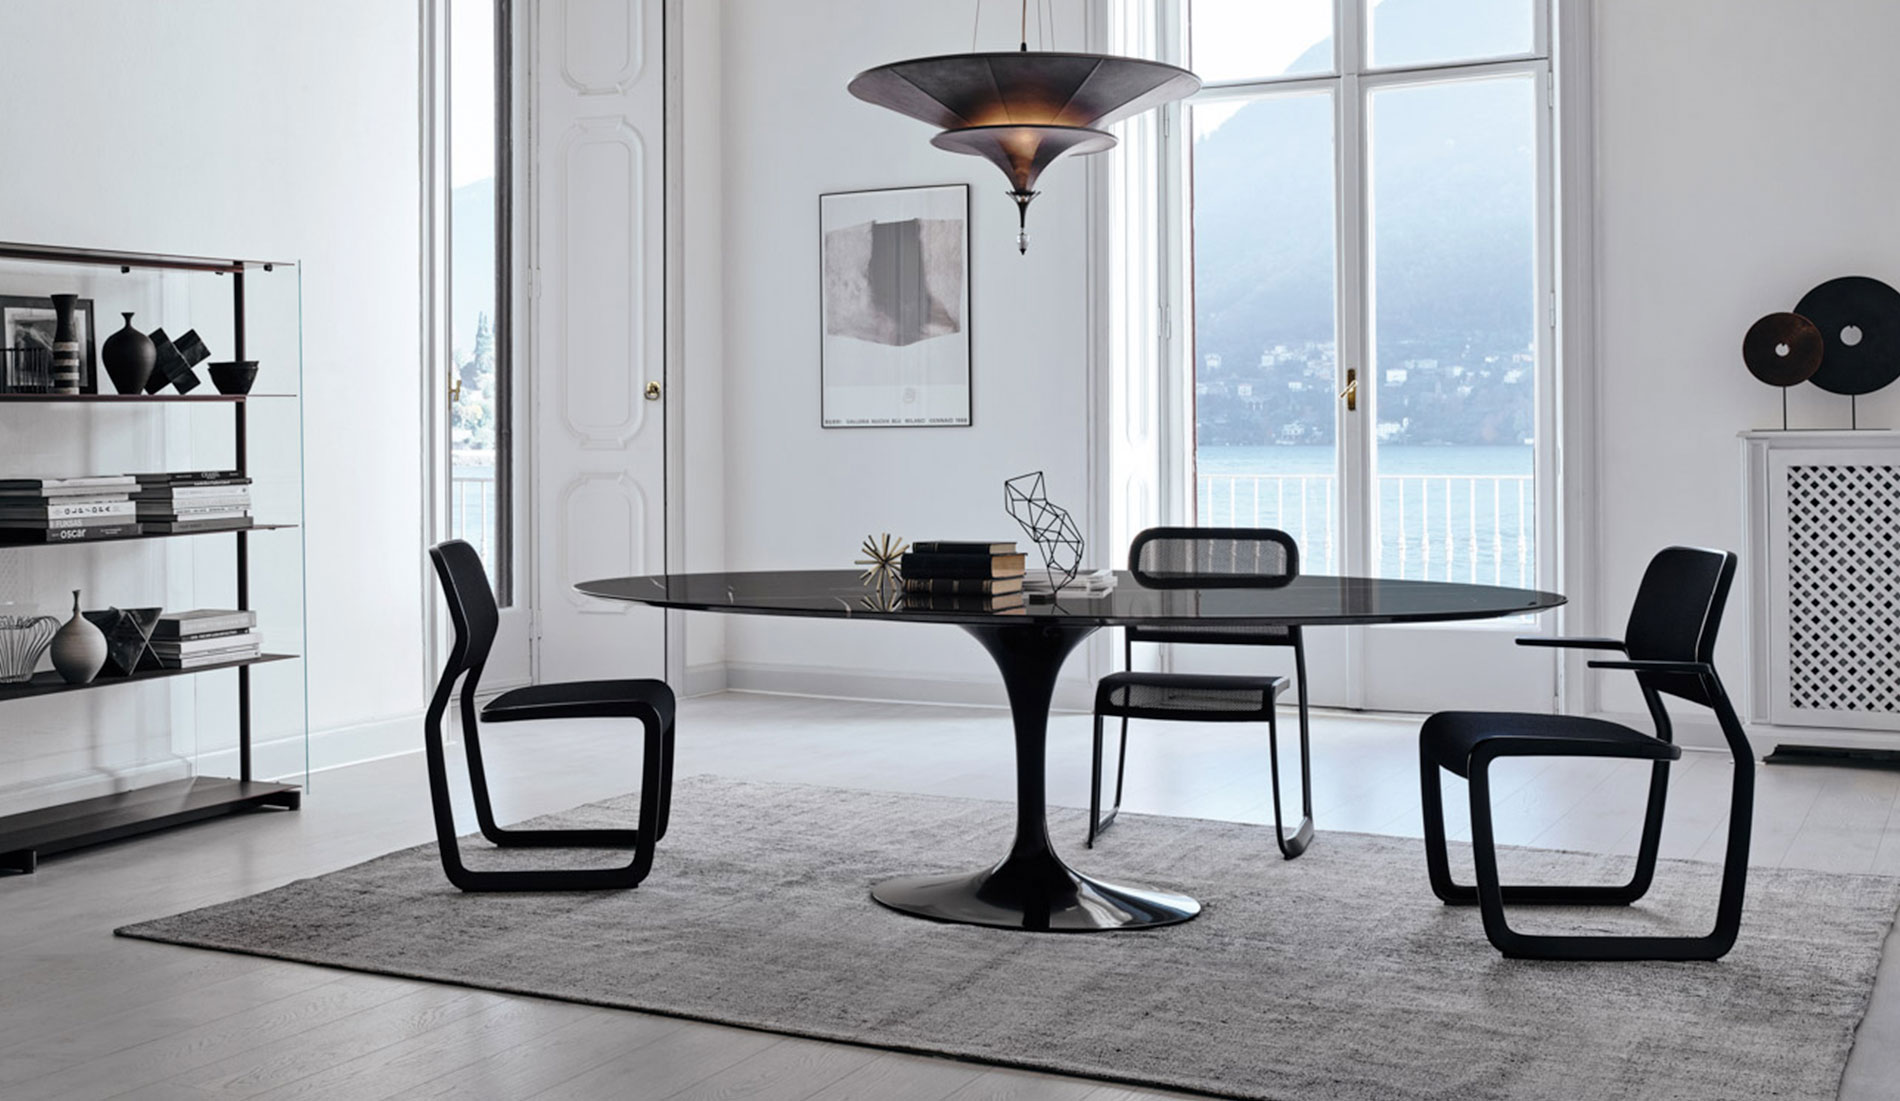 Knoll Dining Room with Saarinen Table and Newson Aluminum Chairs